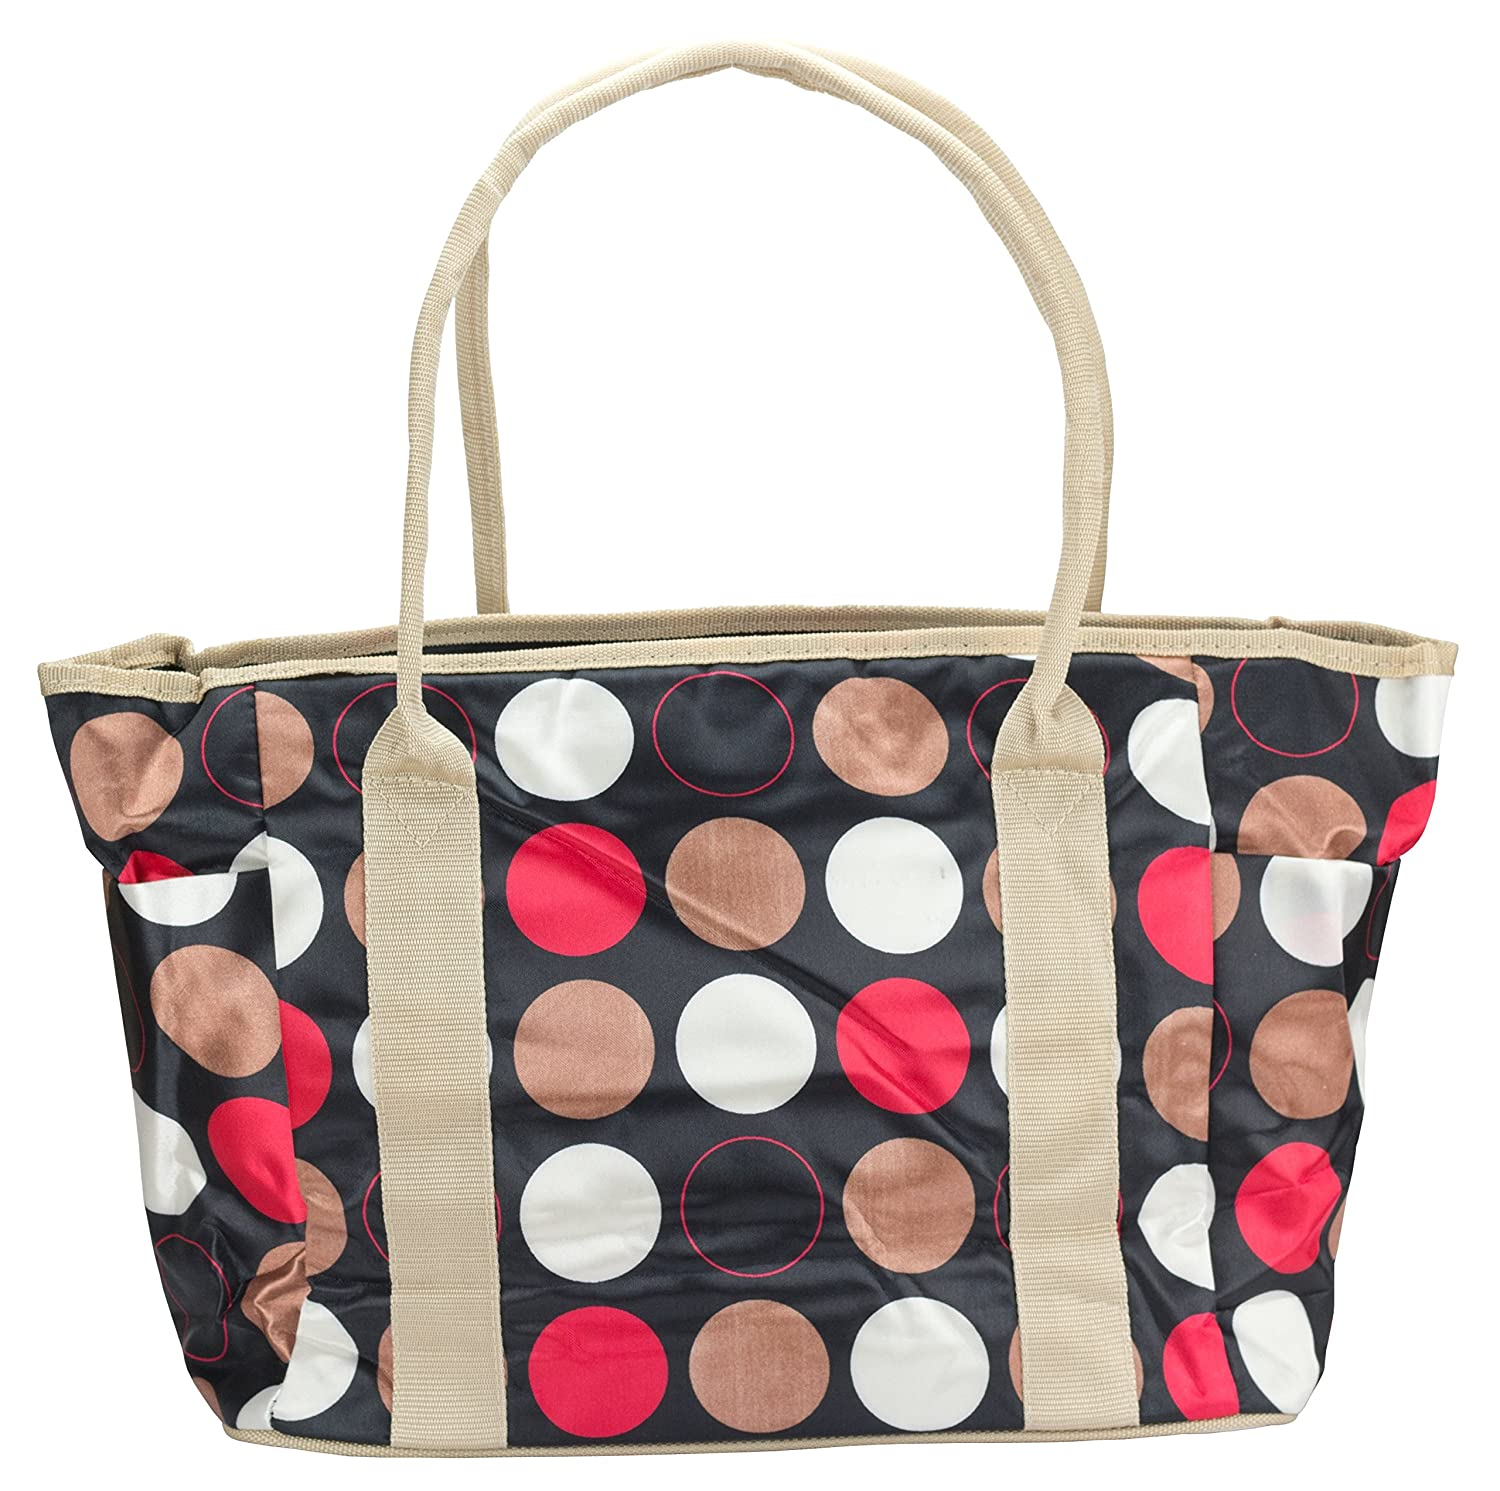 17ab582e6557 Amazon.com : JS Multi-Fashion/Multi-Function Mommy Tote Bag (Polka Dot on  Black) : Beauty